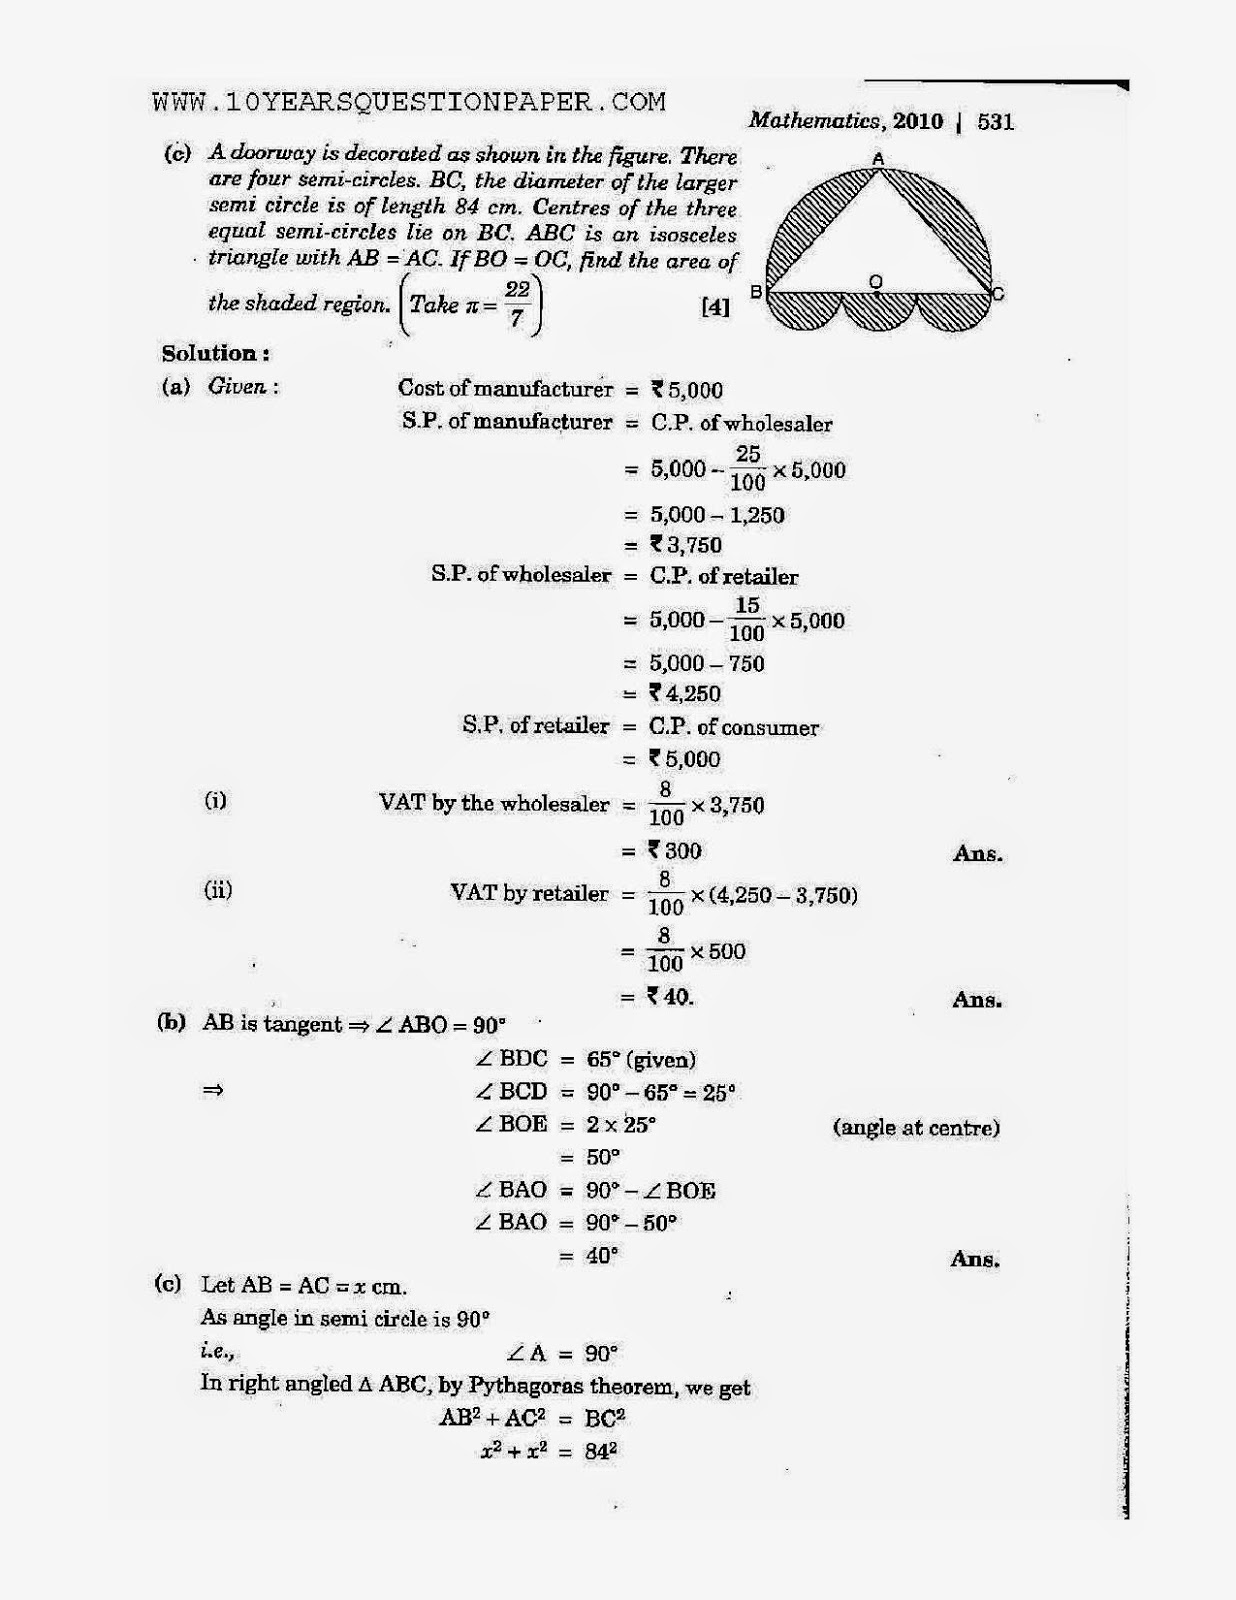 icse class 10th mathematics download solved question paper 2010